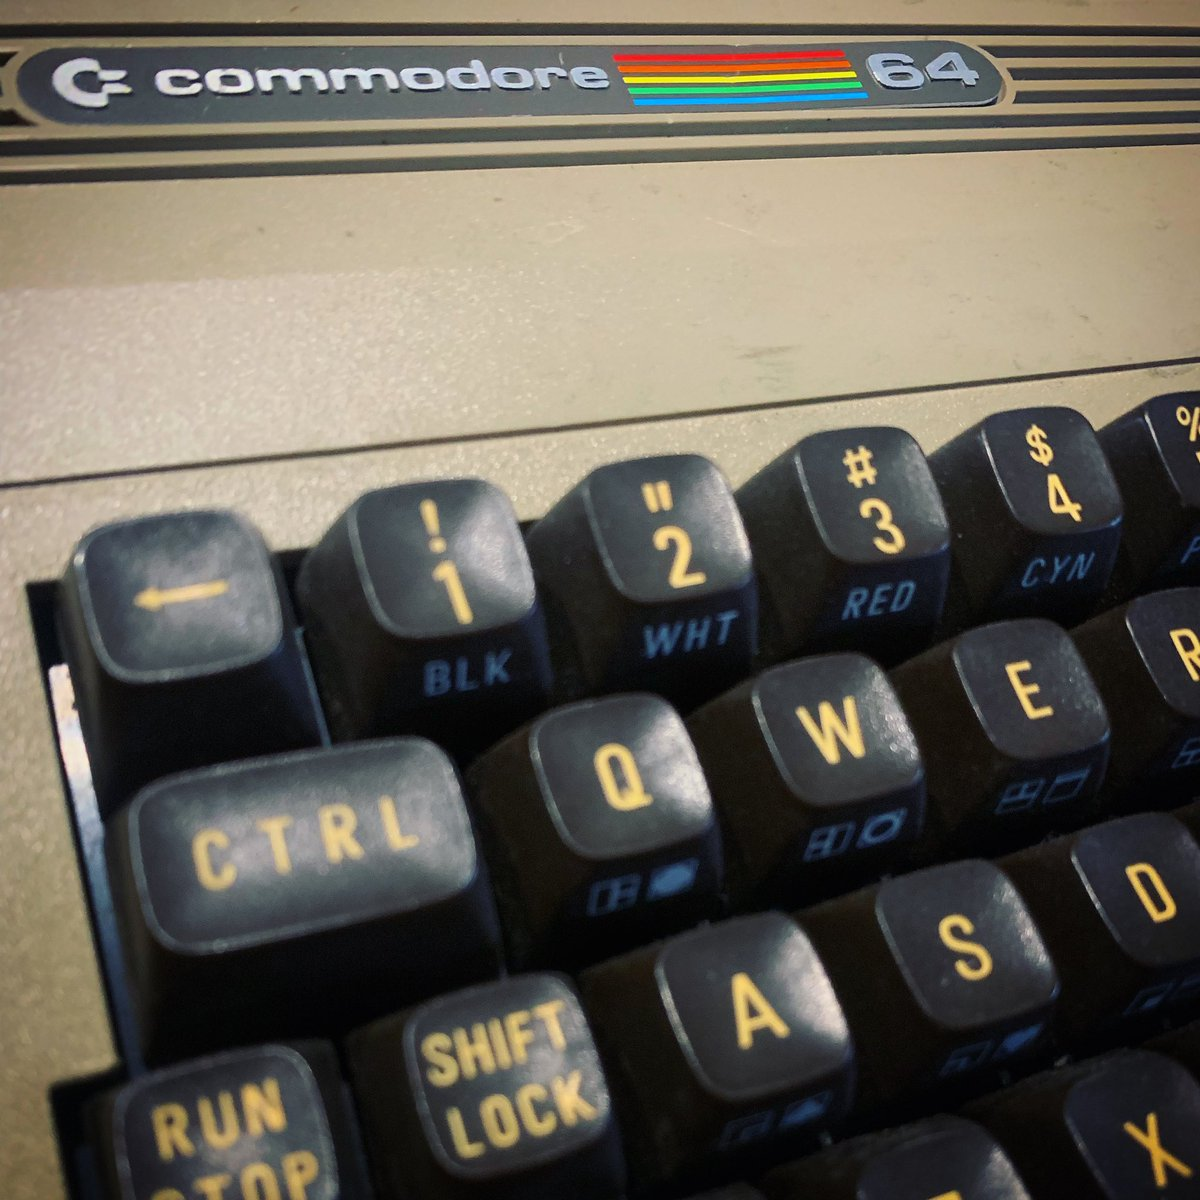 c64reloaded tagged Tweets and Downloader | Twipu